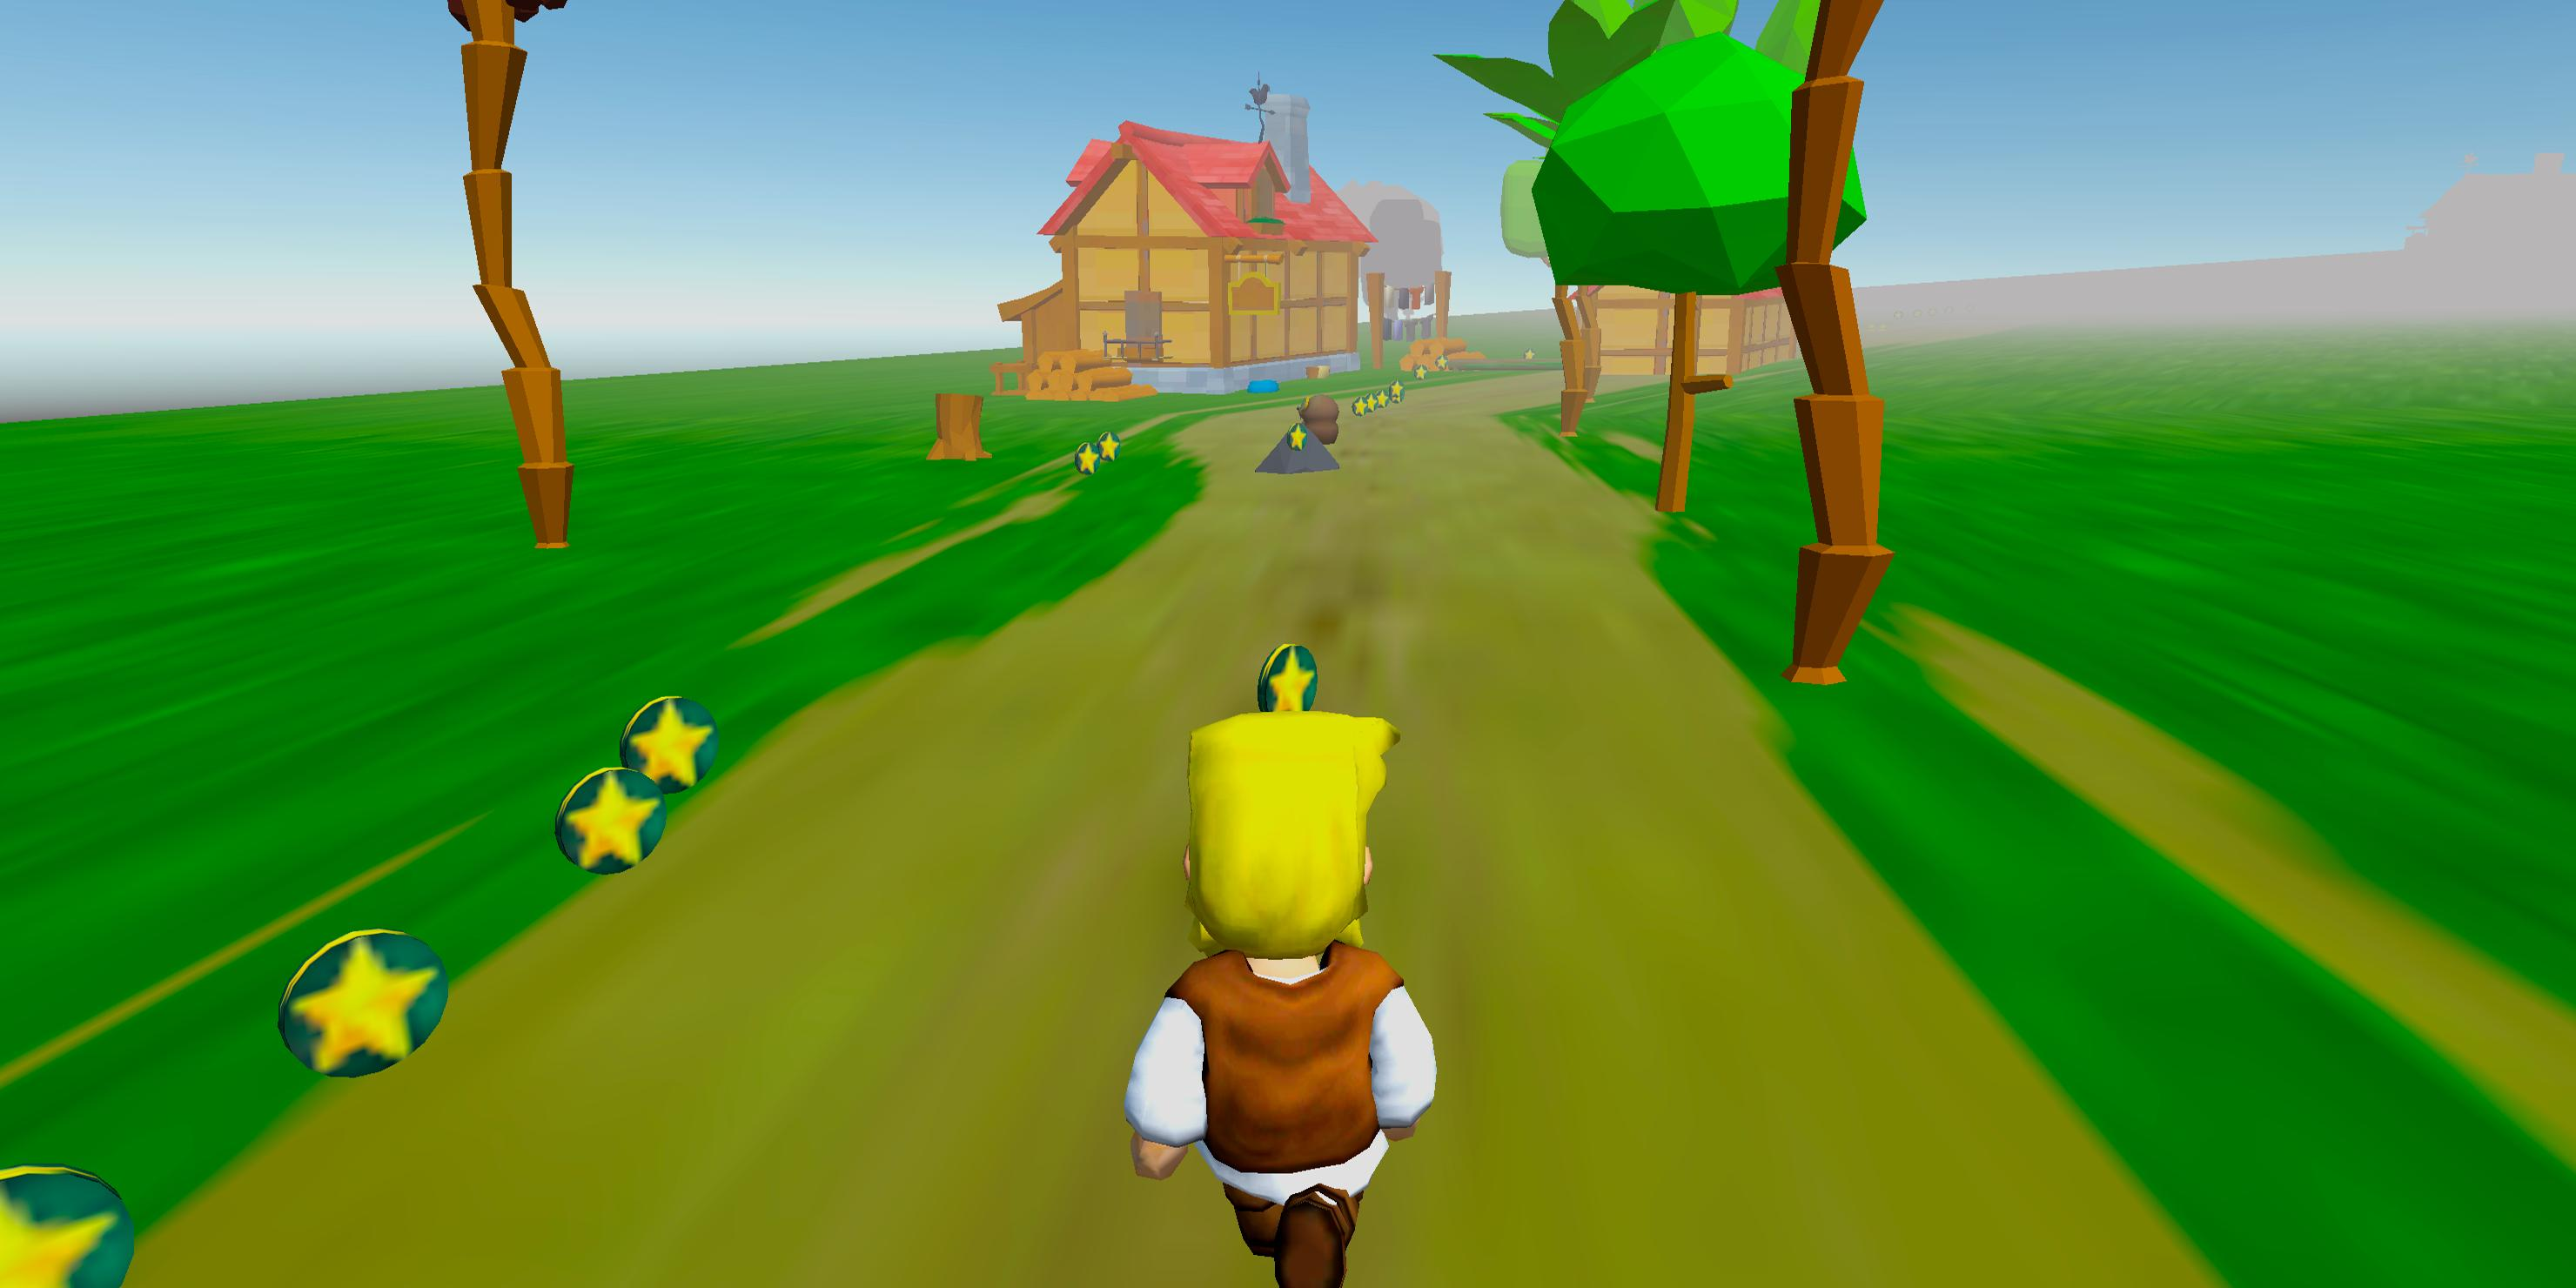 Running Crazy Farm 0.4 Screenshot 2